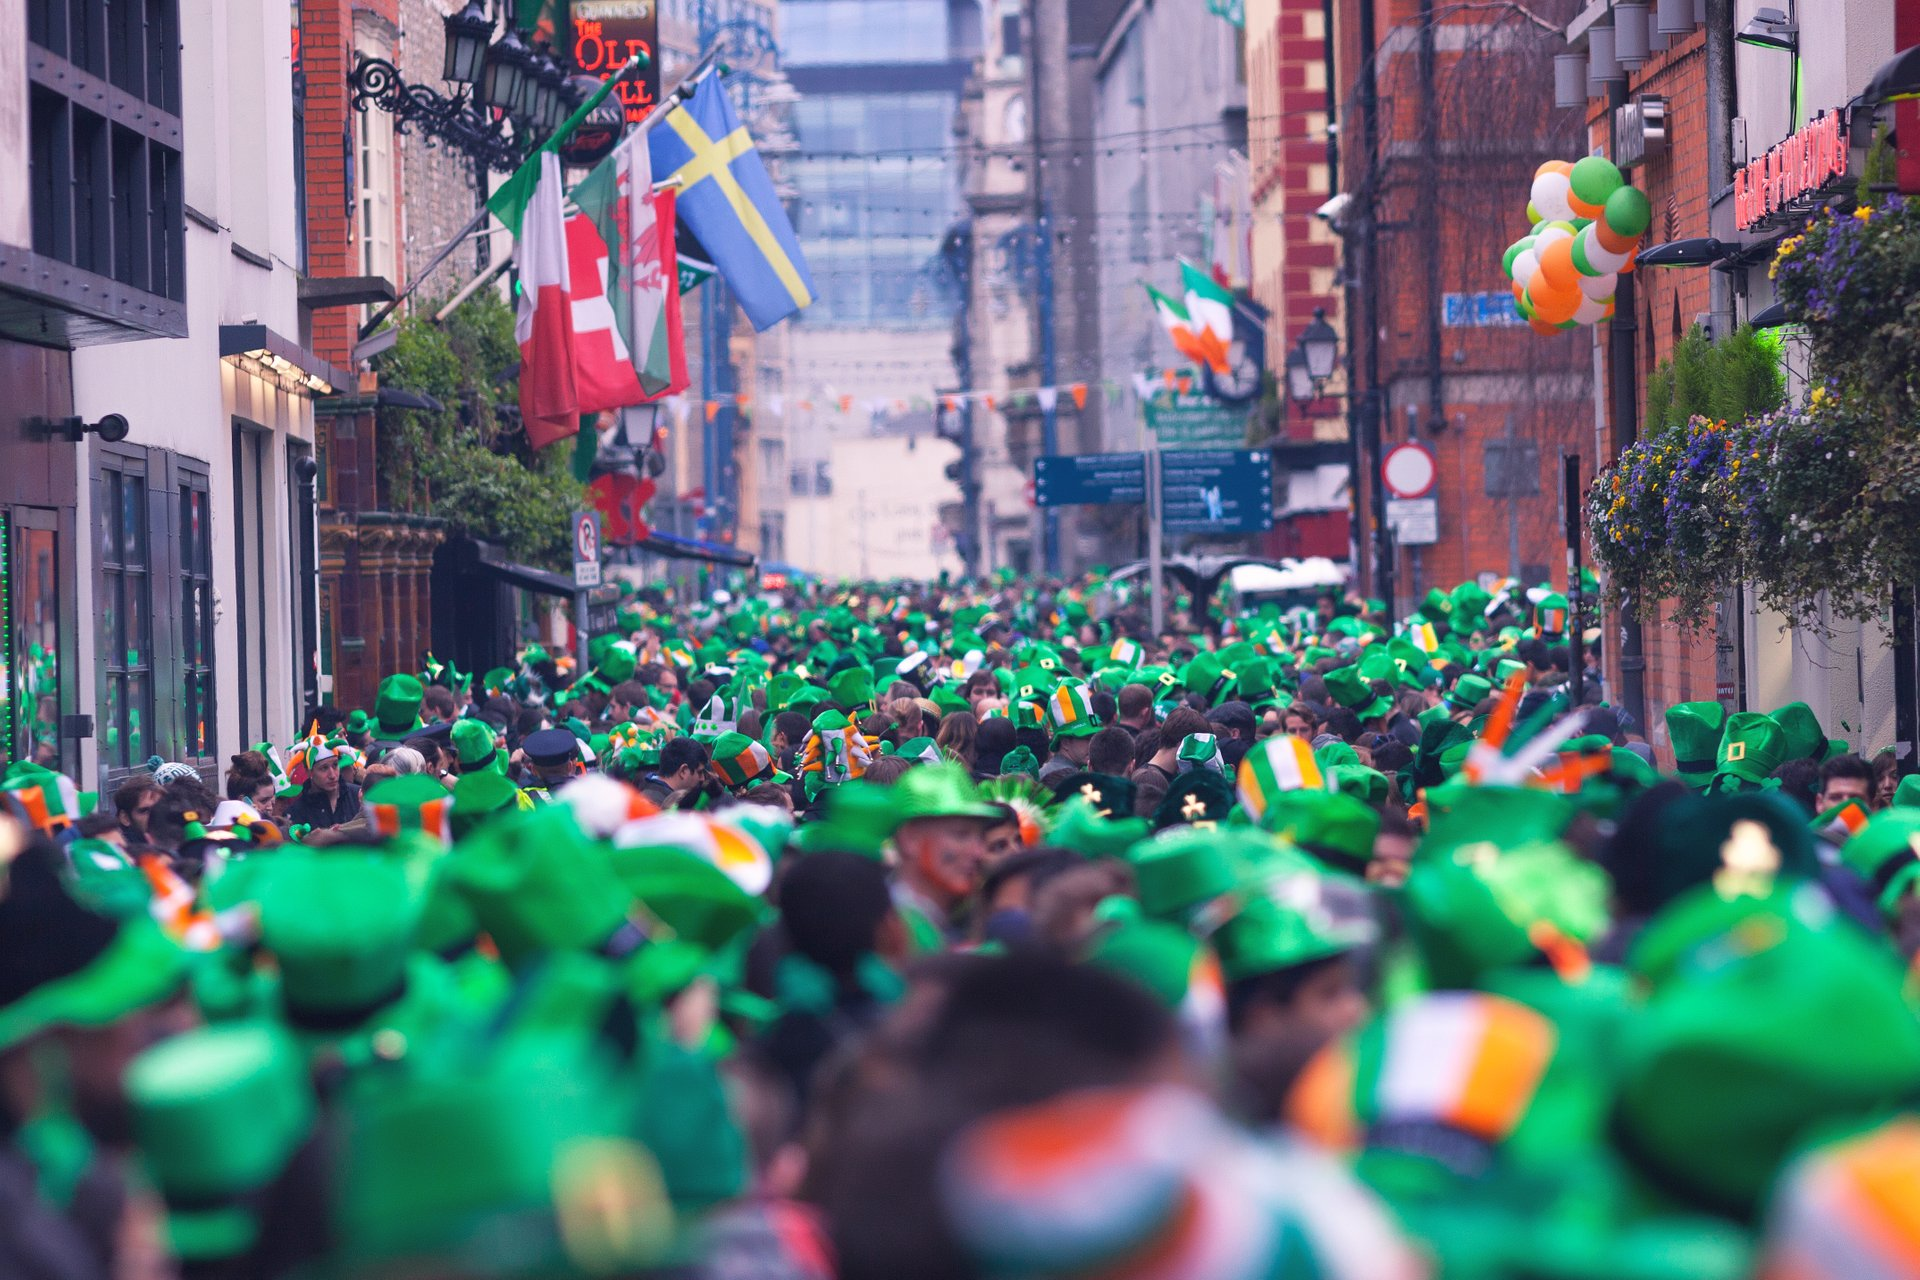 Best time for St. Patrick's Day in Ireland 2019